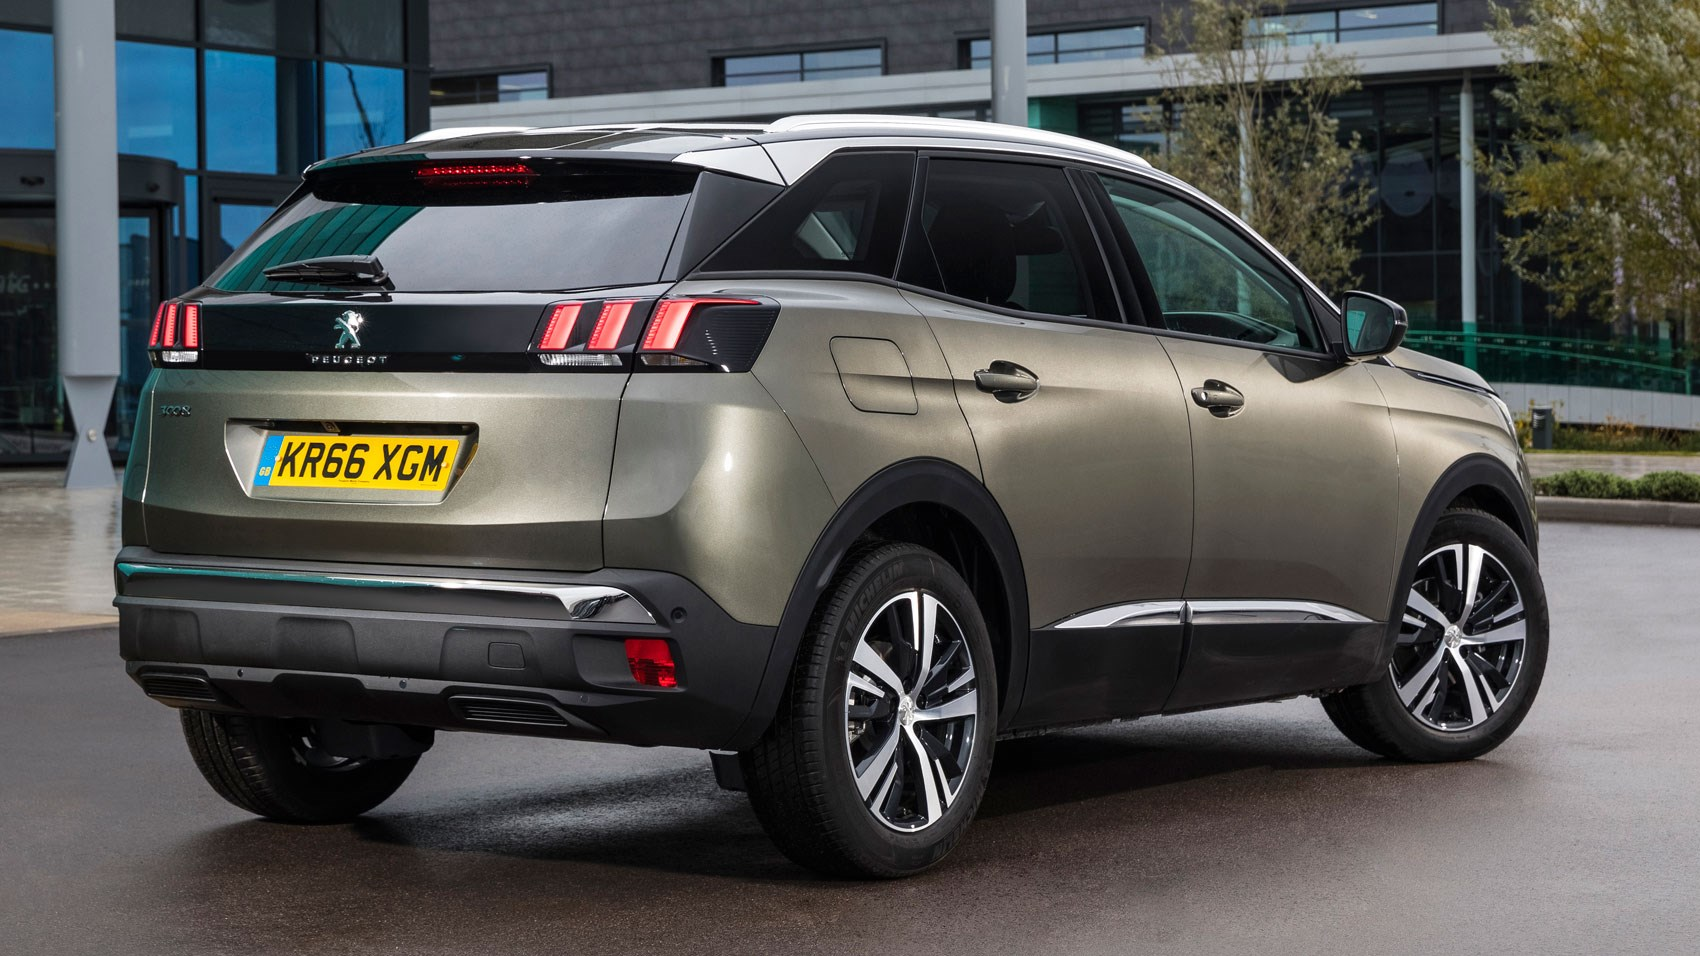 Peugeot 3008 1.6 THP 165 EAT6 Allure (2017) review by CAR ...